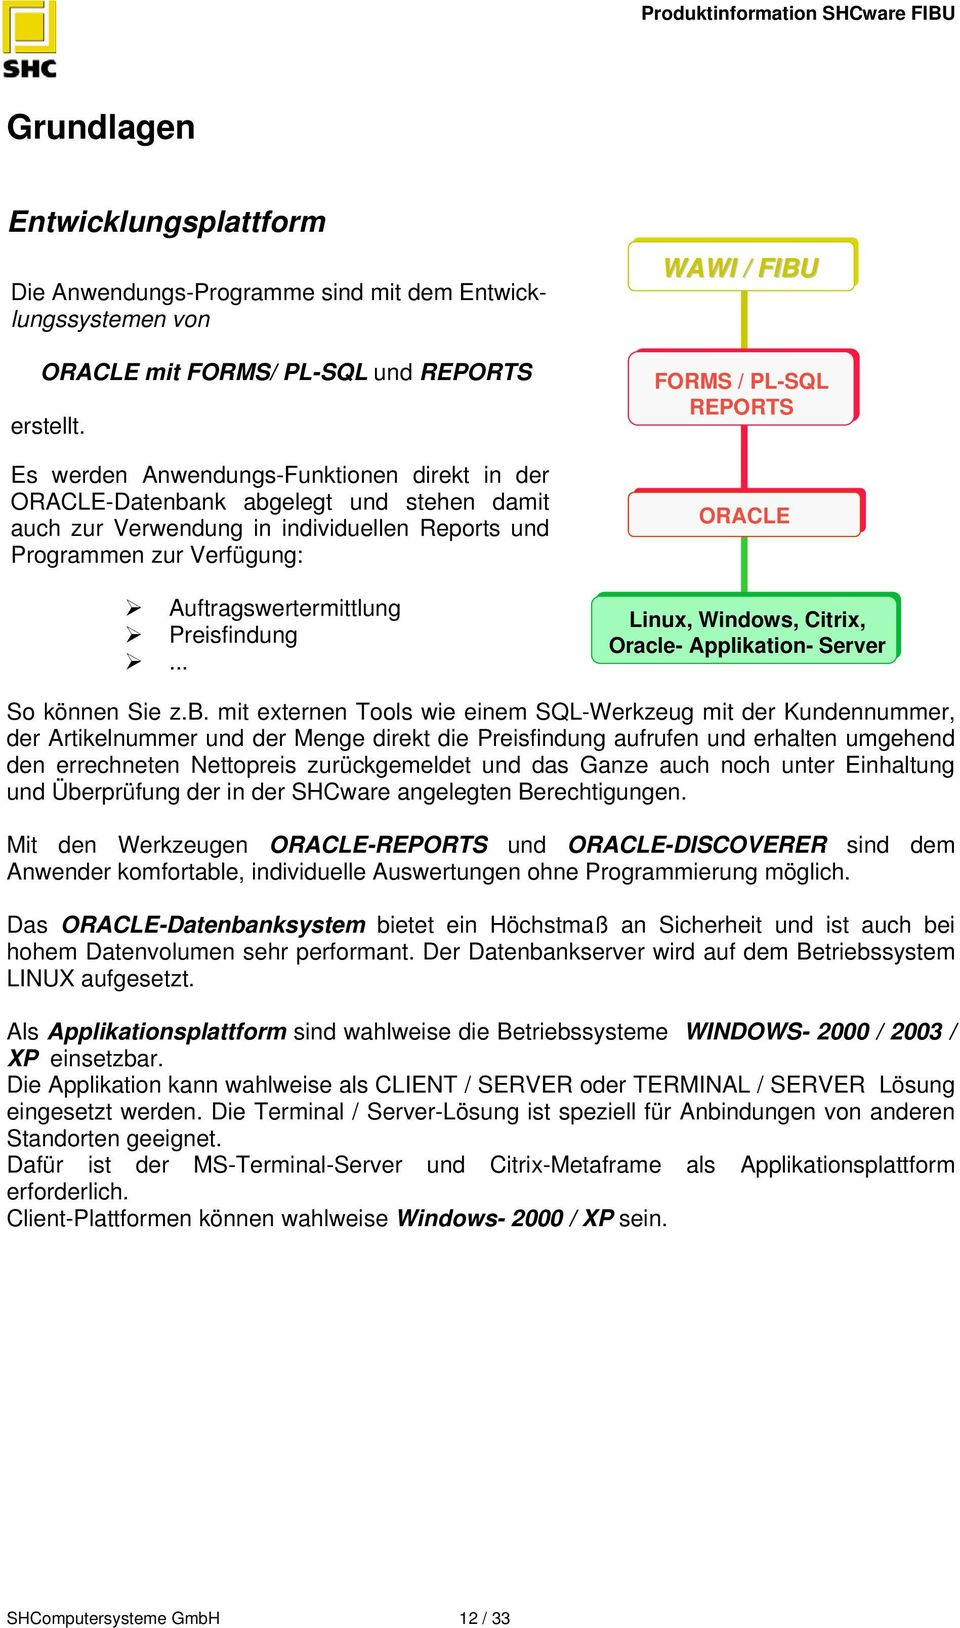 .. WAWI / FIBU FORMS / PL-SQL REPORTS ORACLE Linux, Windows, Citrix, Oracle- Applikation- Server So können Sie z.b.